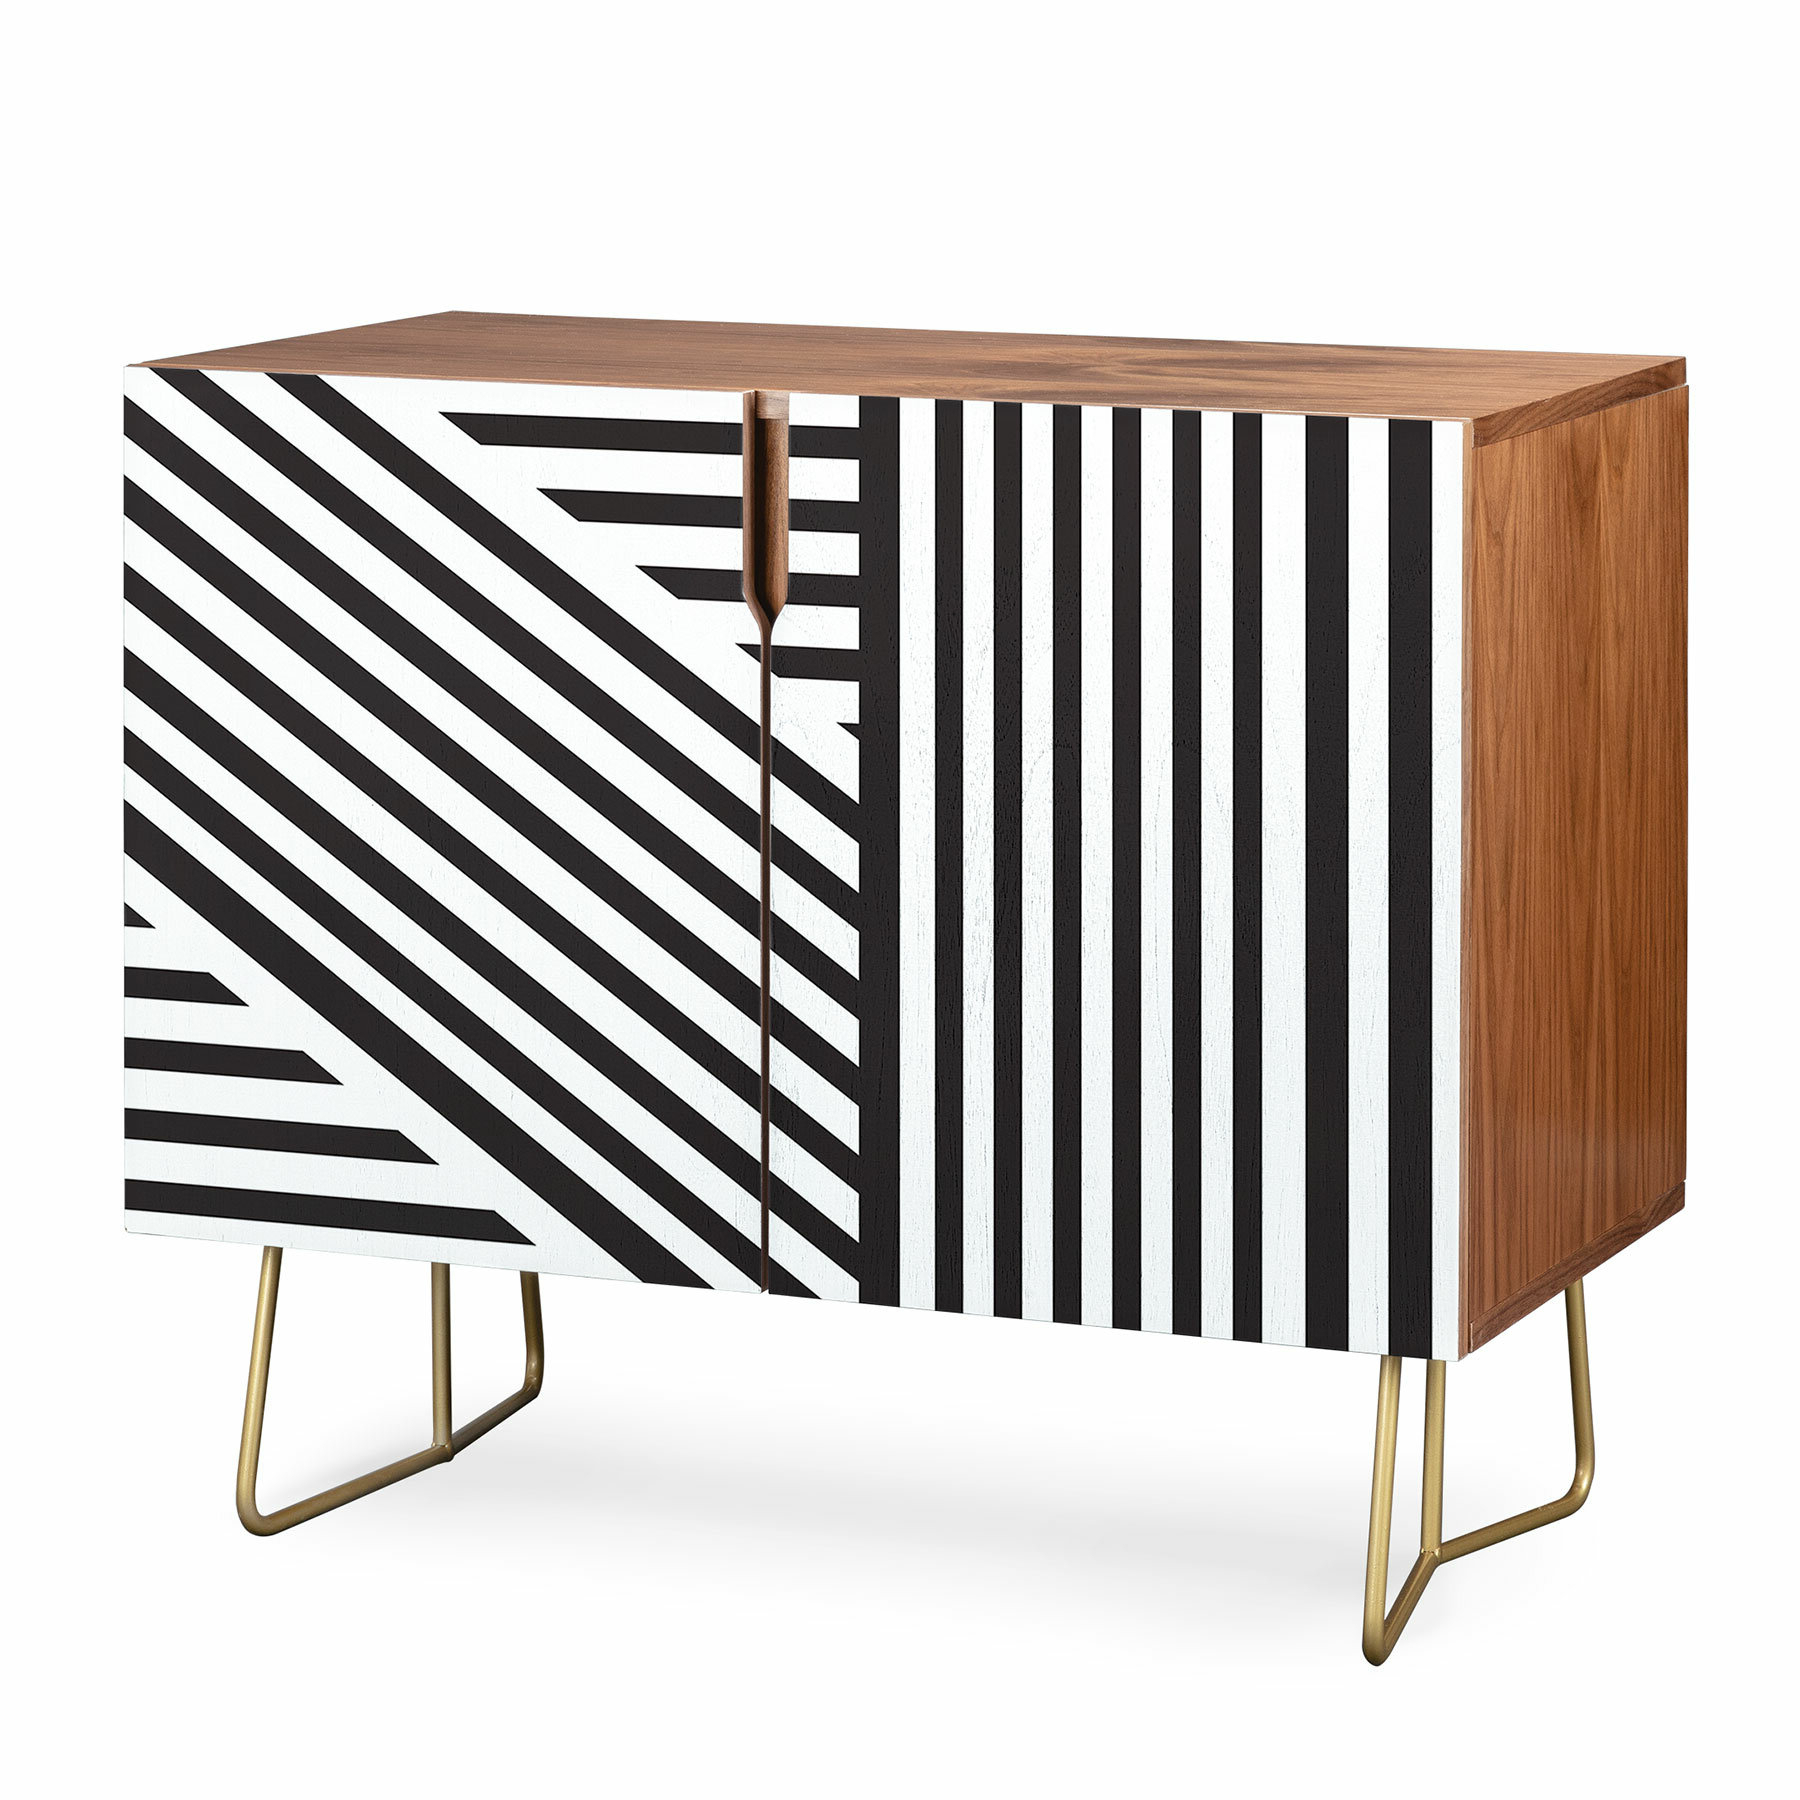 Vy La Everything Nice Credenza Pertaining To Emerald Cubes Credenzas (View 20 of 20)